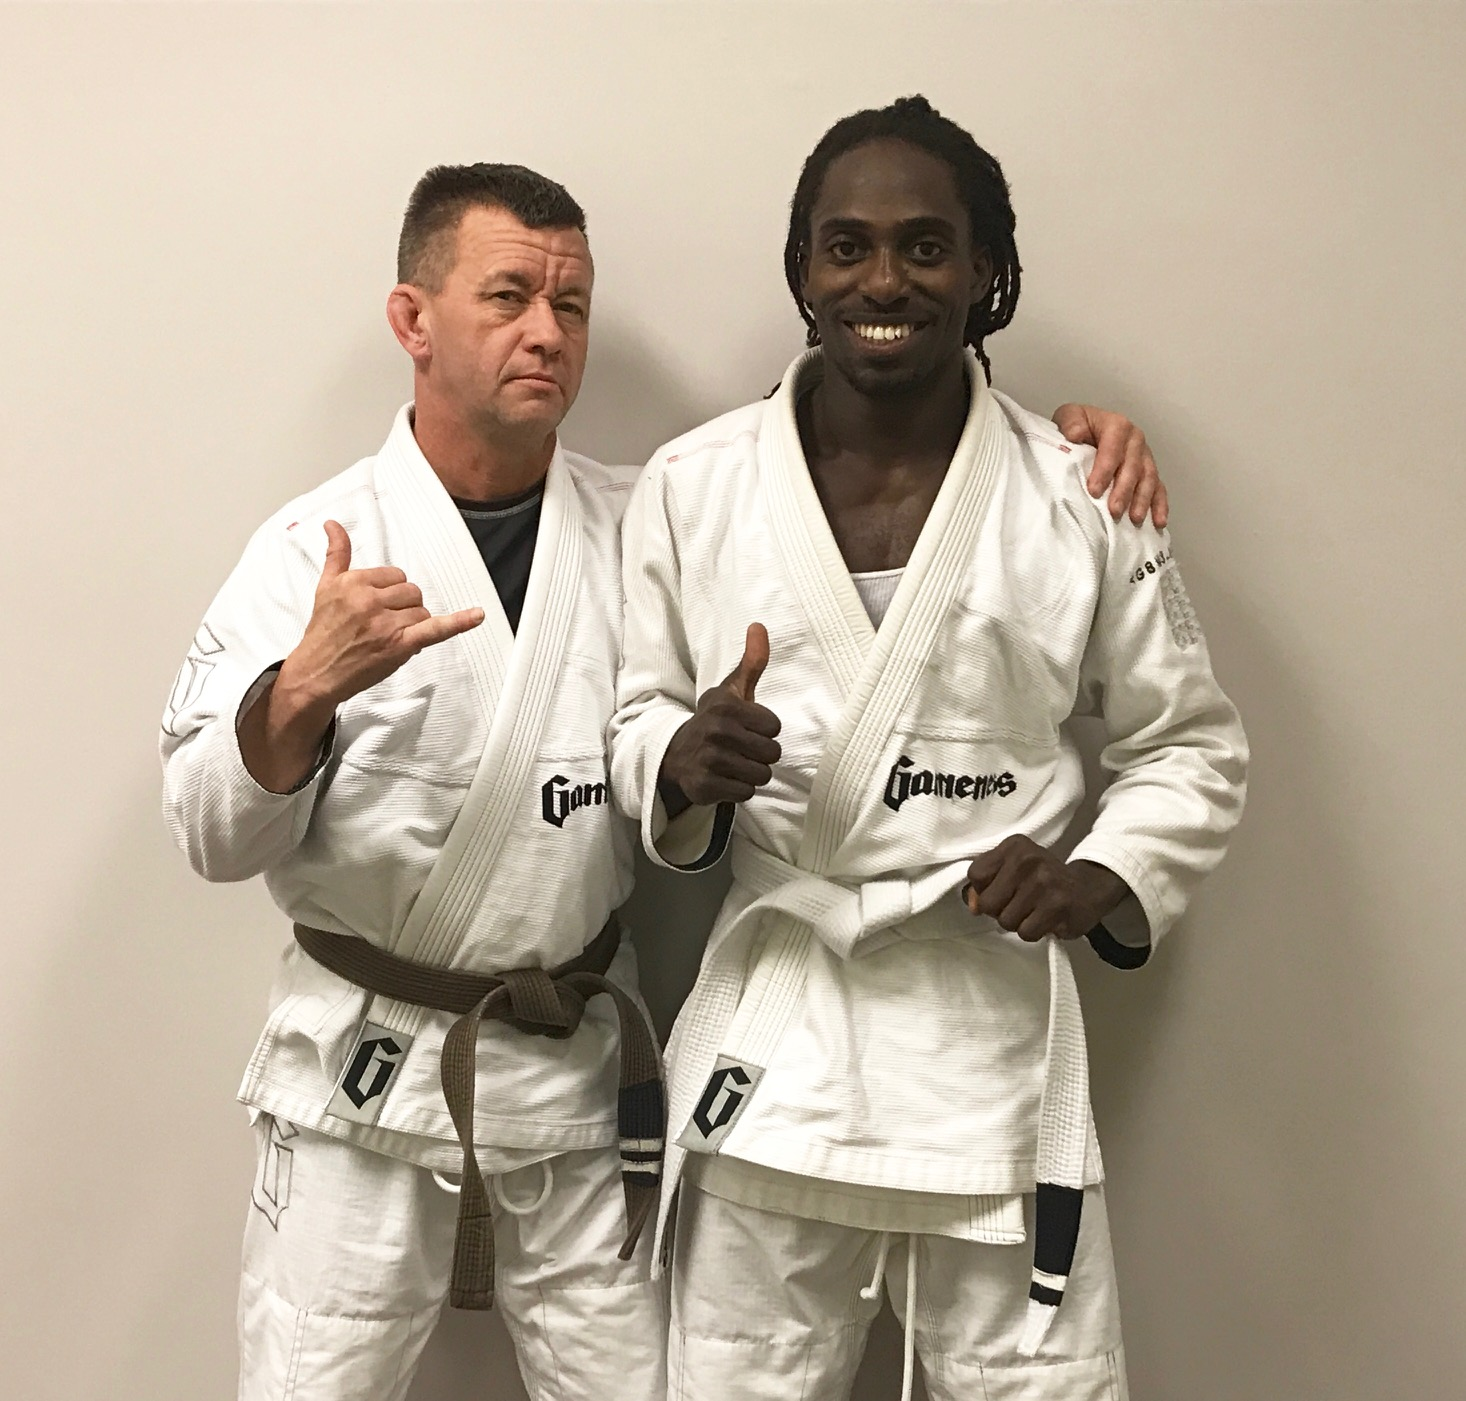 Osei give a thumbs up after his promotion.